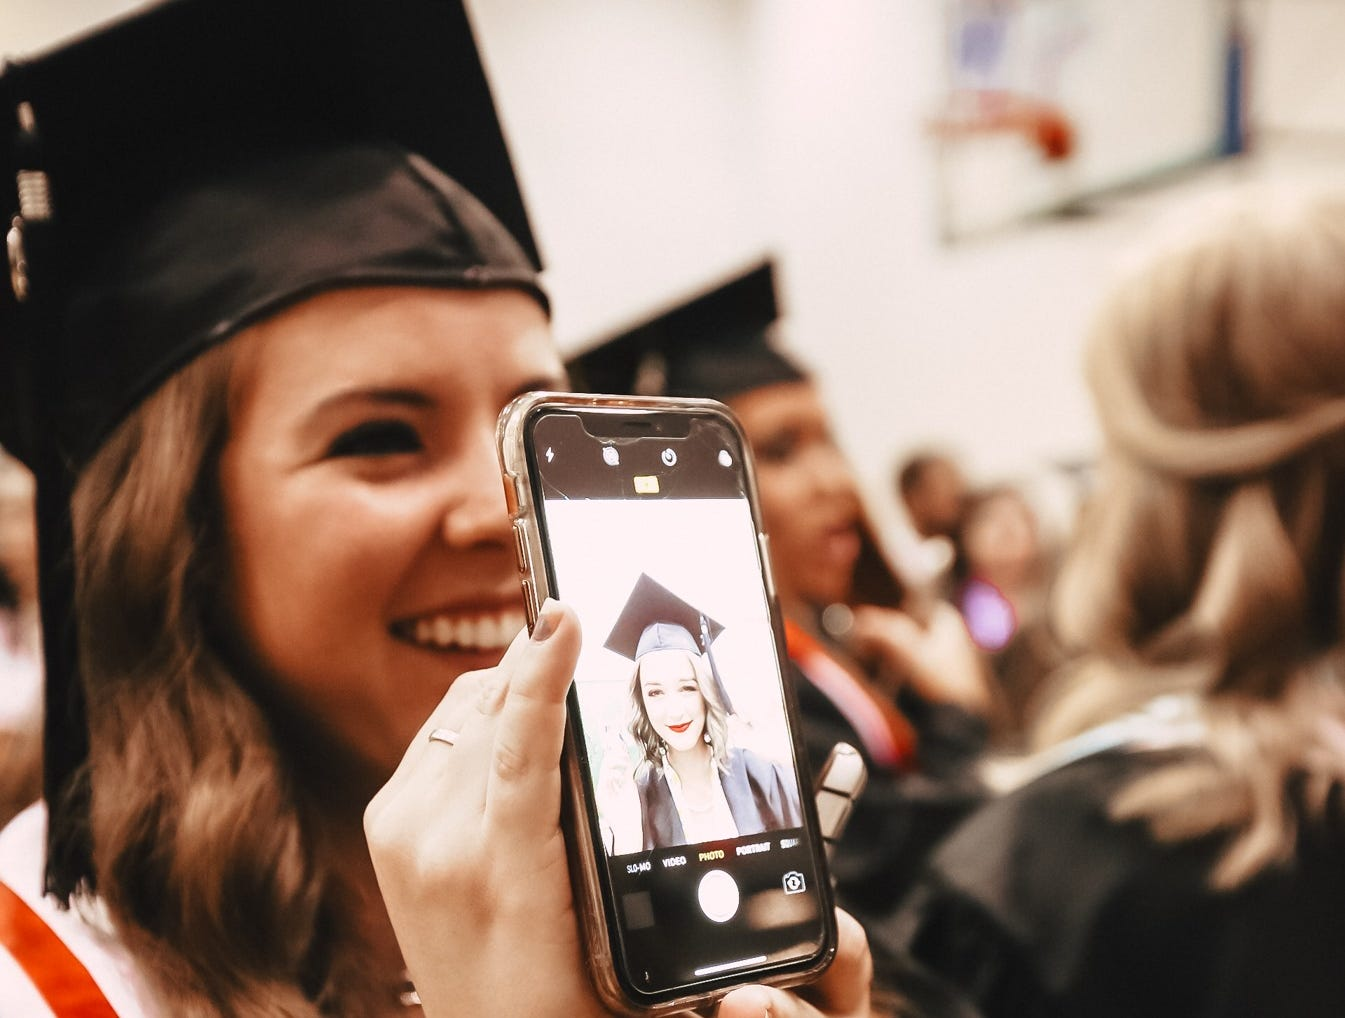 MTSU held commencement exercises on Saturday, May 4, 2019 for undergraduates at Murphy Center.